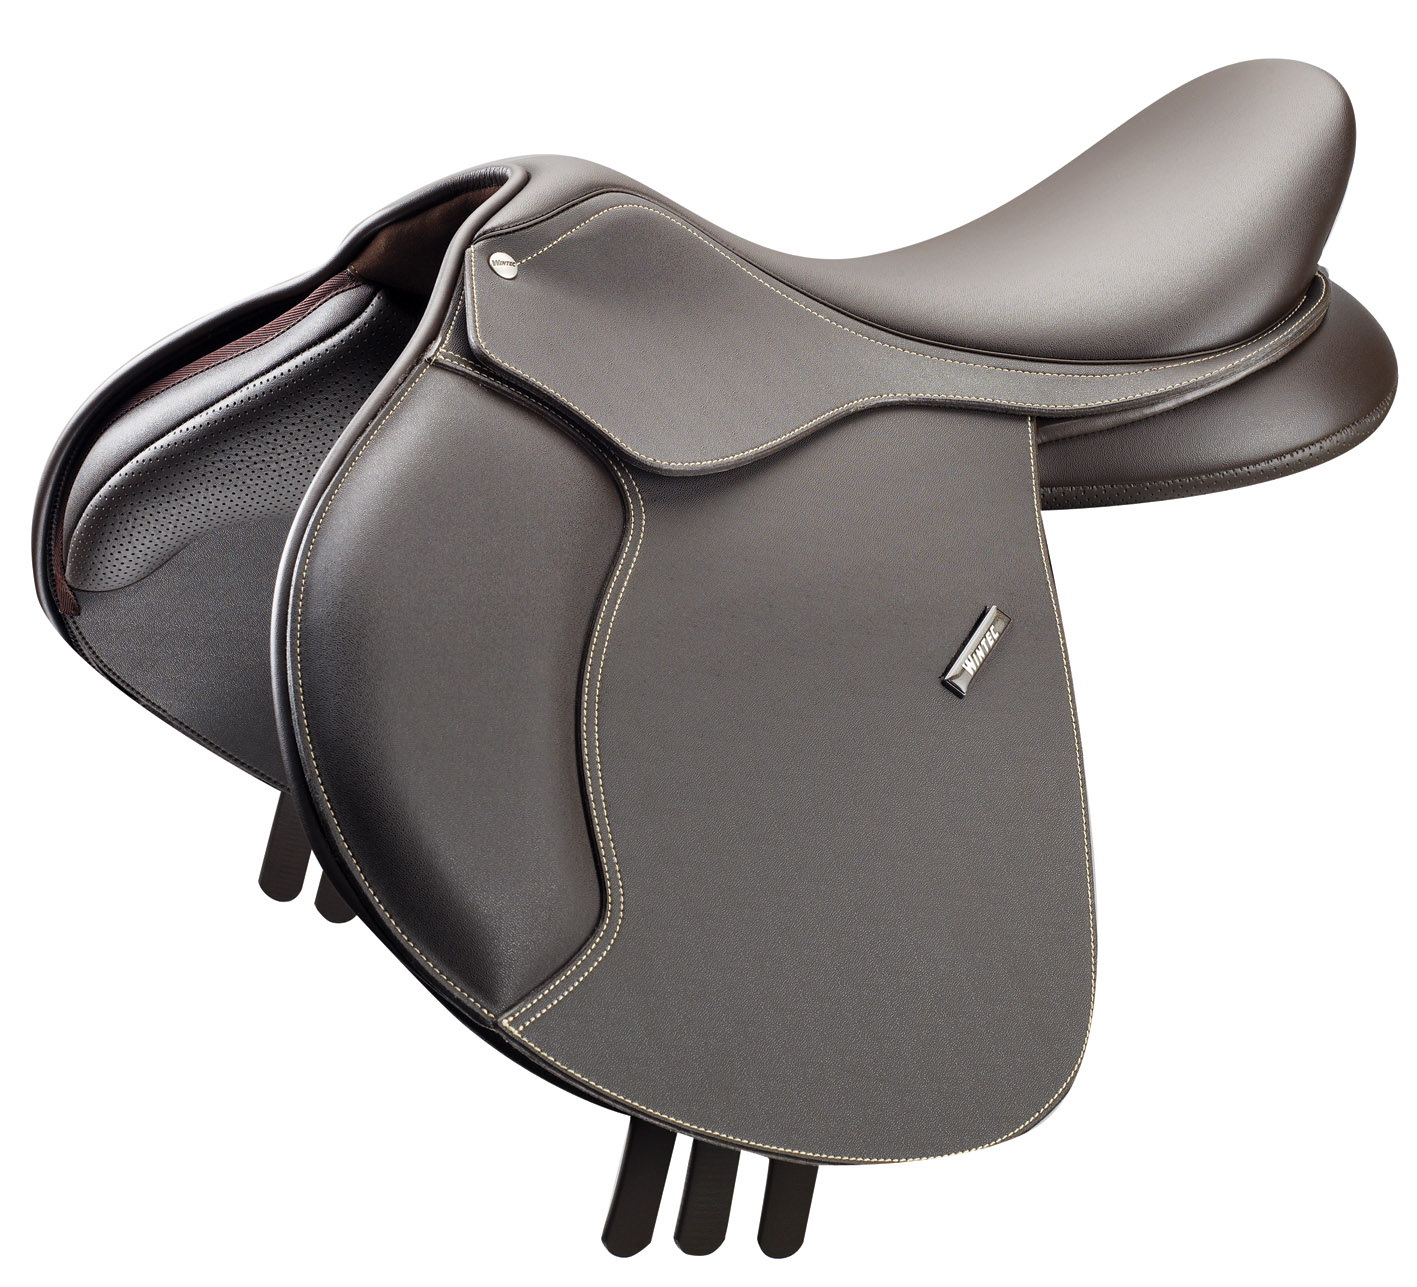 NEW 2012 Wintec 500 CAIR Jump Saddle